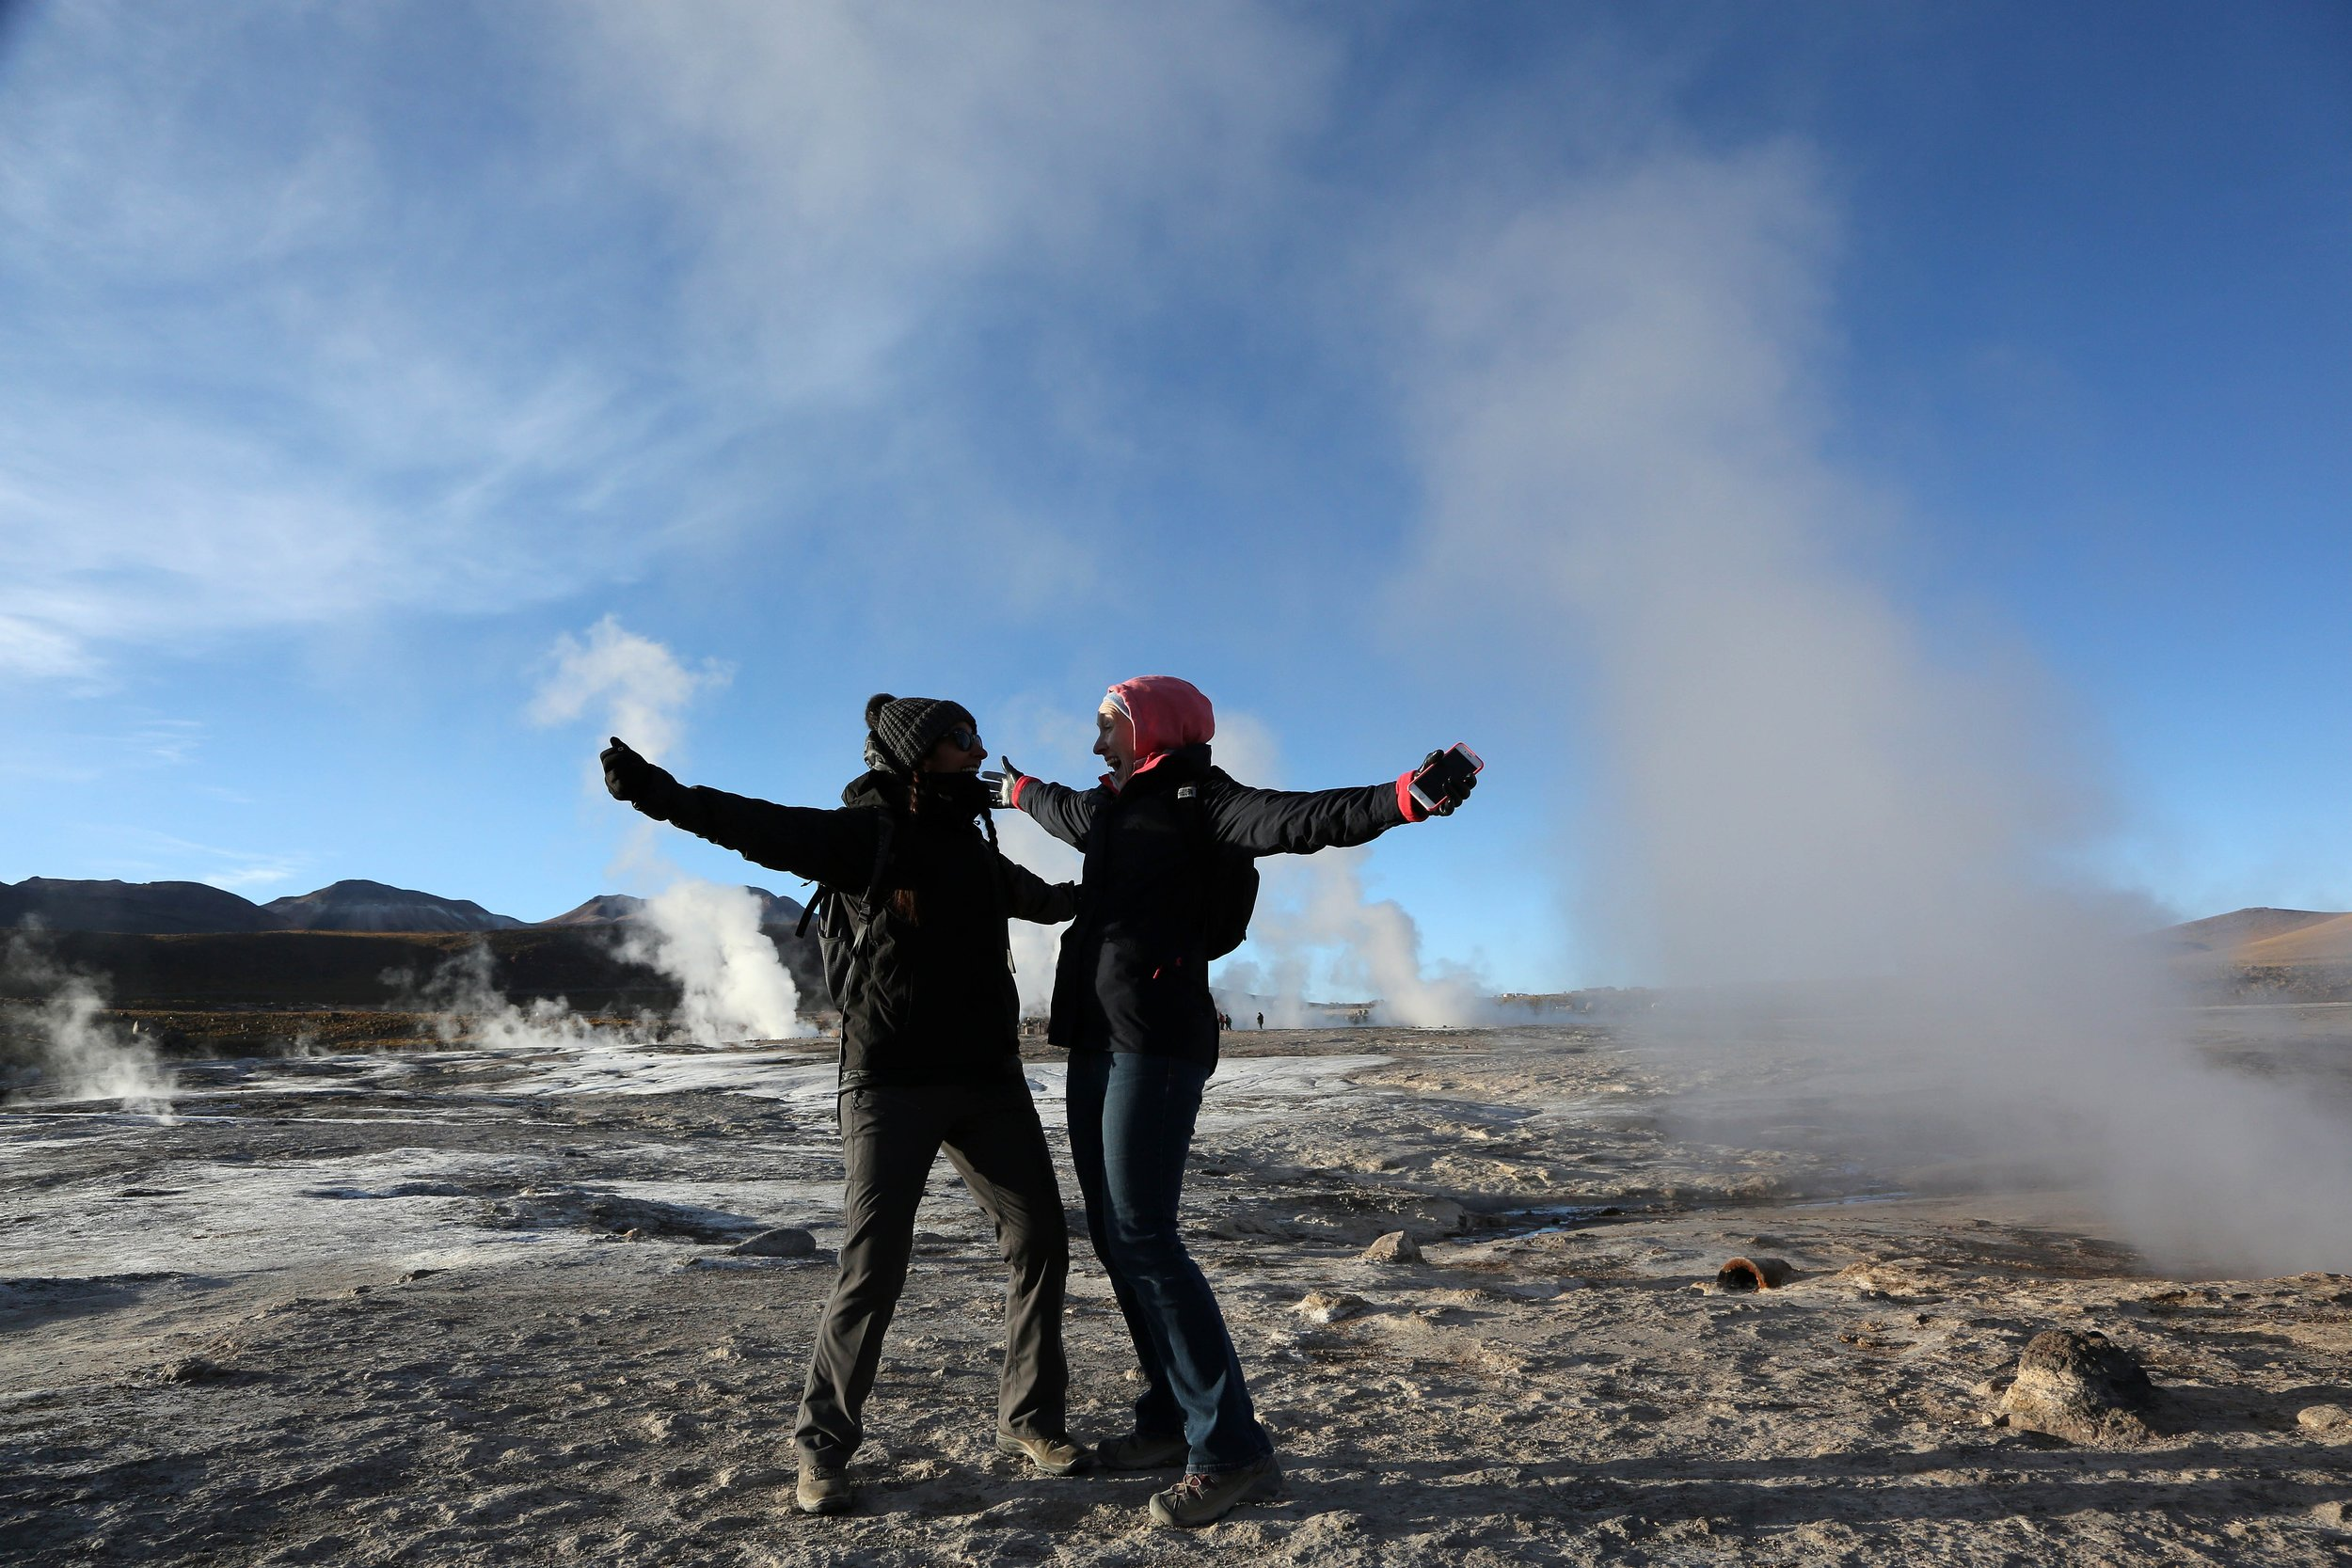 Admiring the erupting geysers, Chile